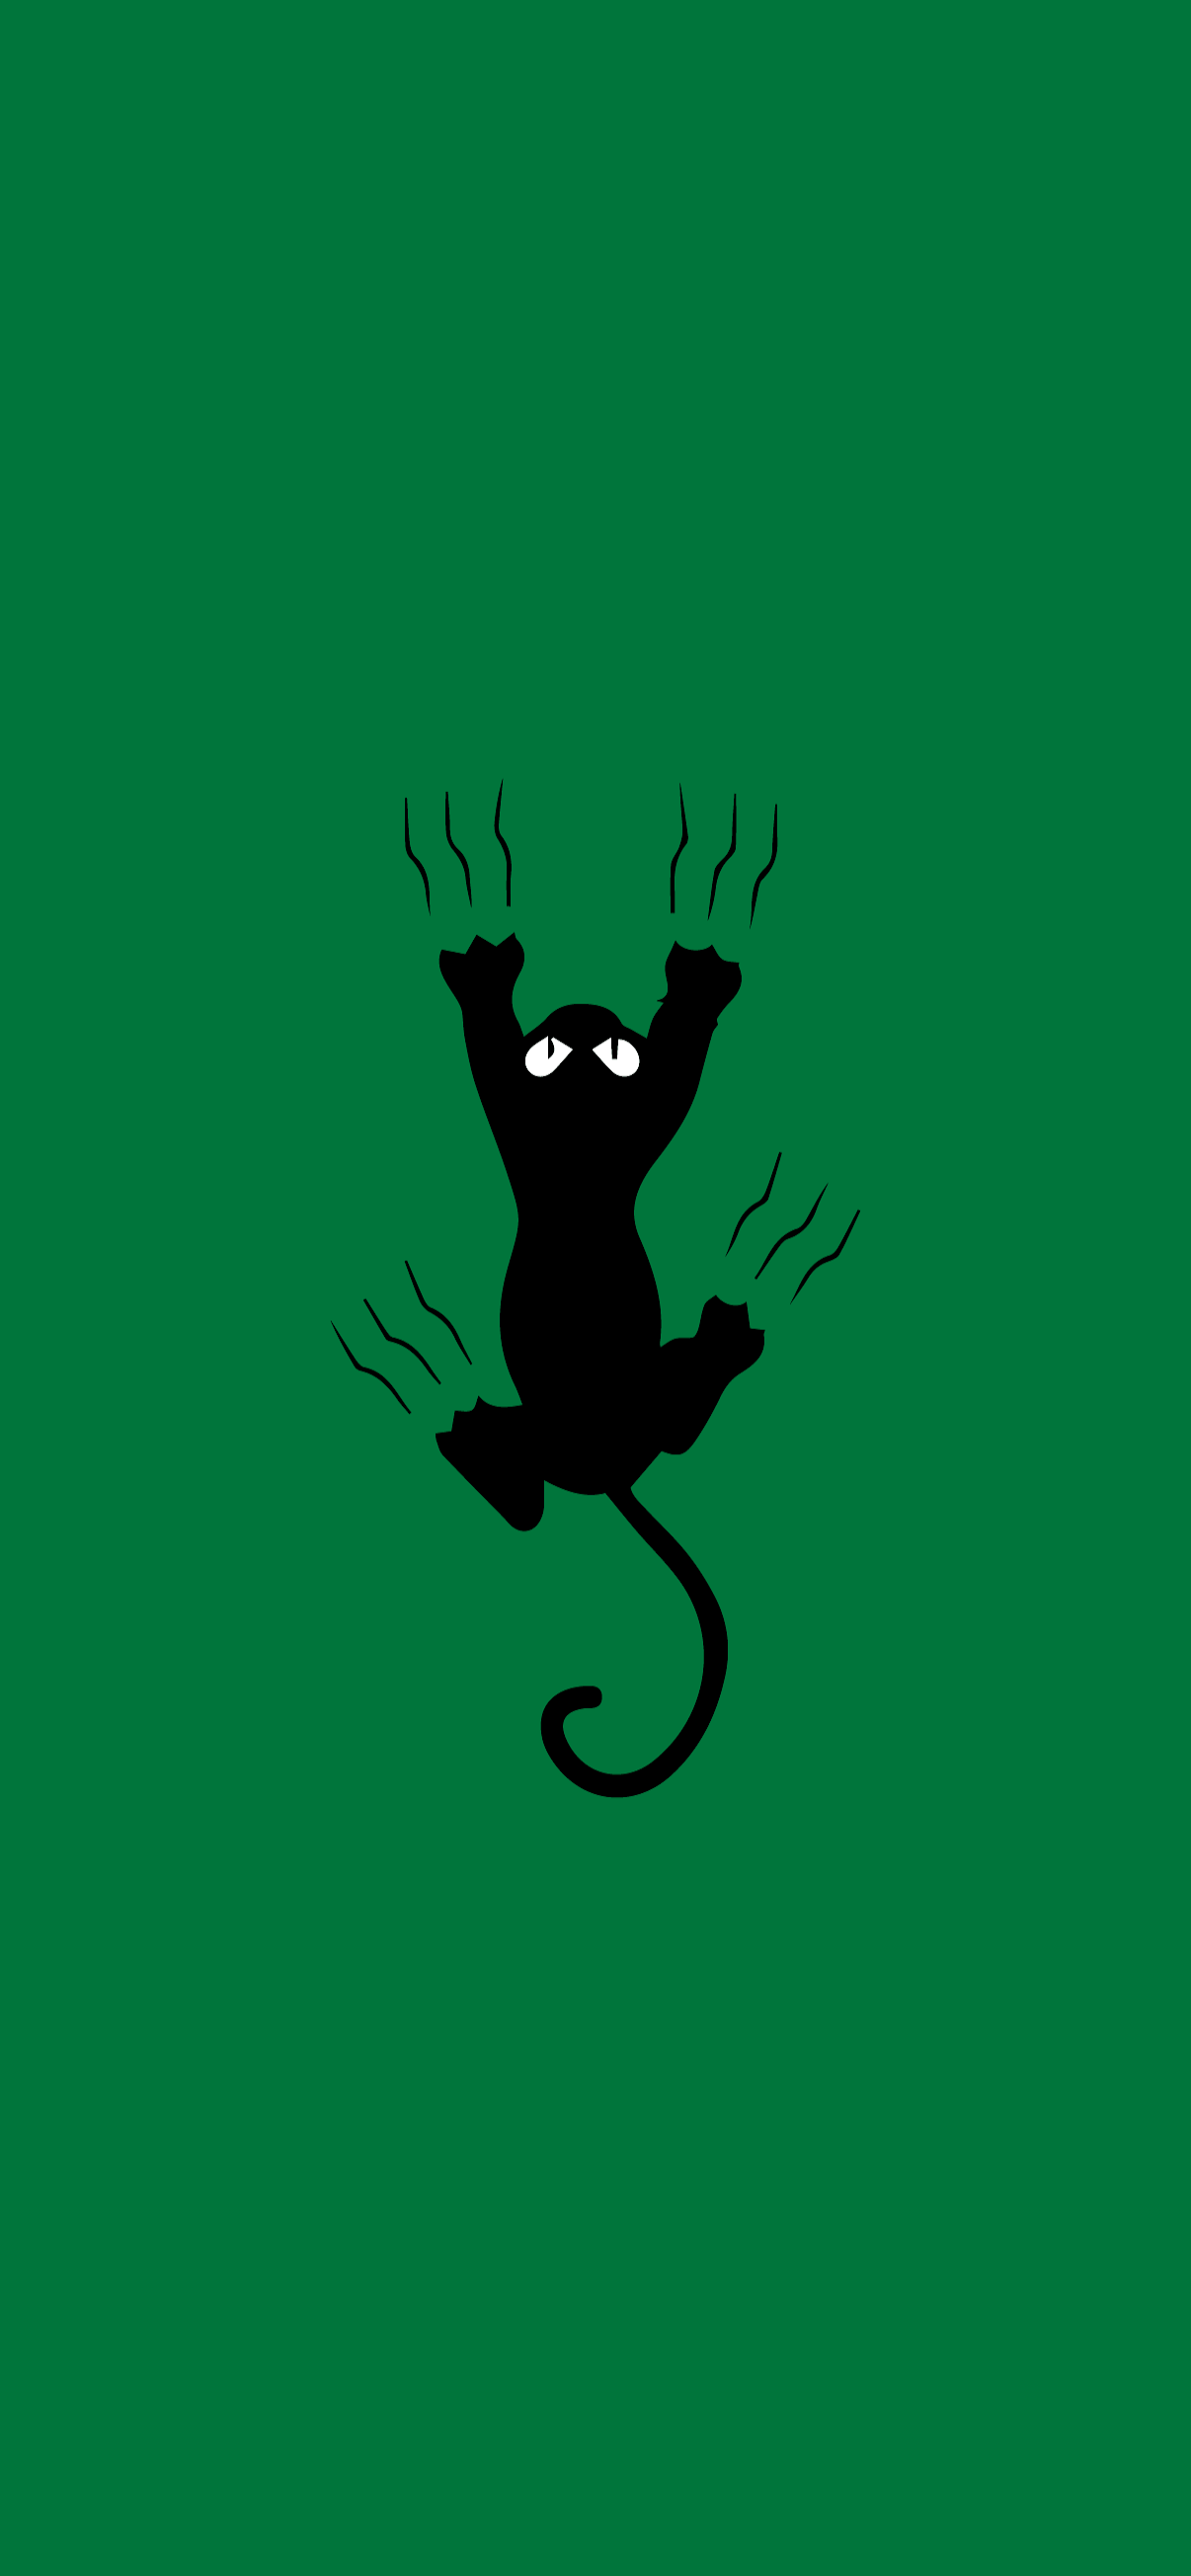 cat scratching minimalist wallpaper hd for phone green